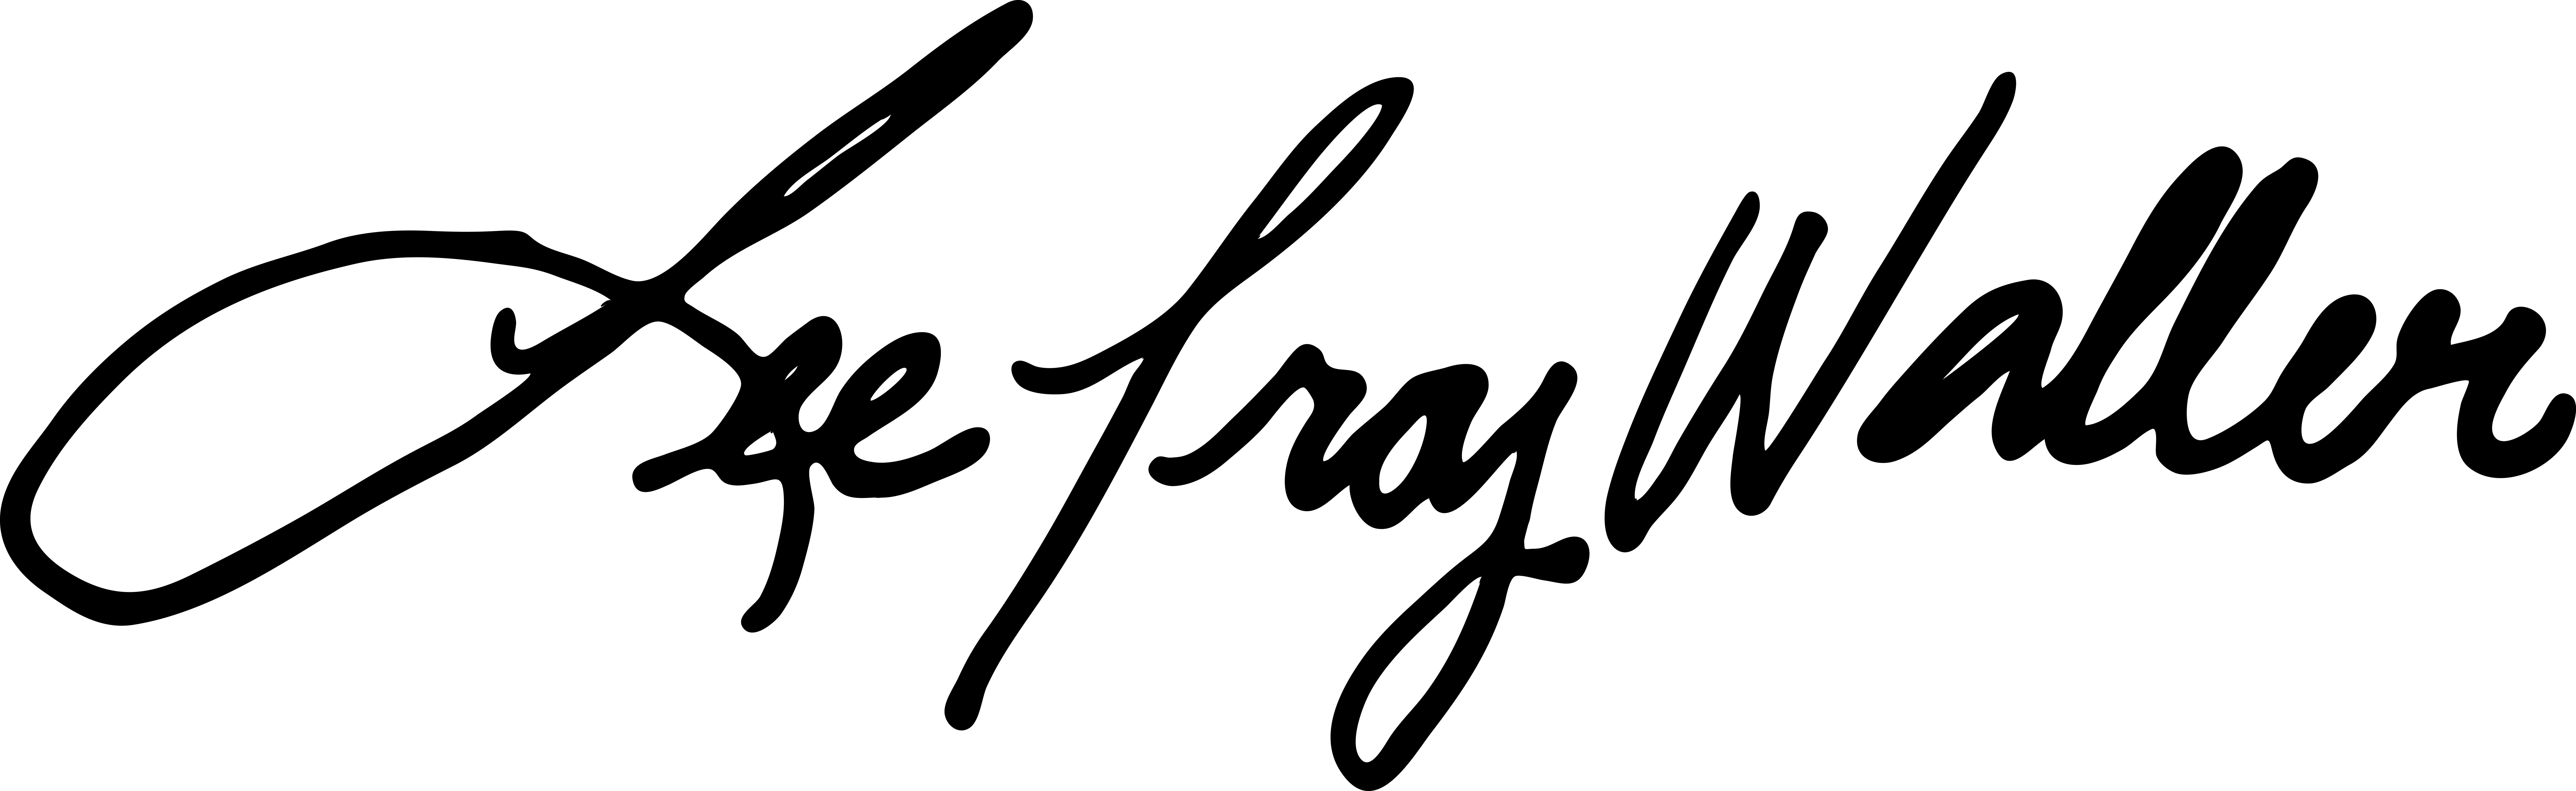 Leetroy  Waller Signature